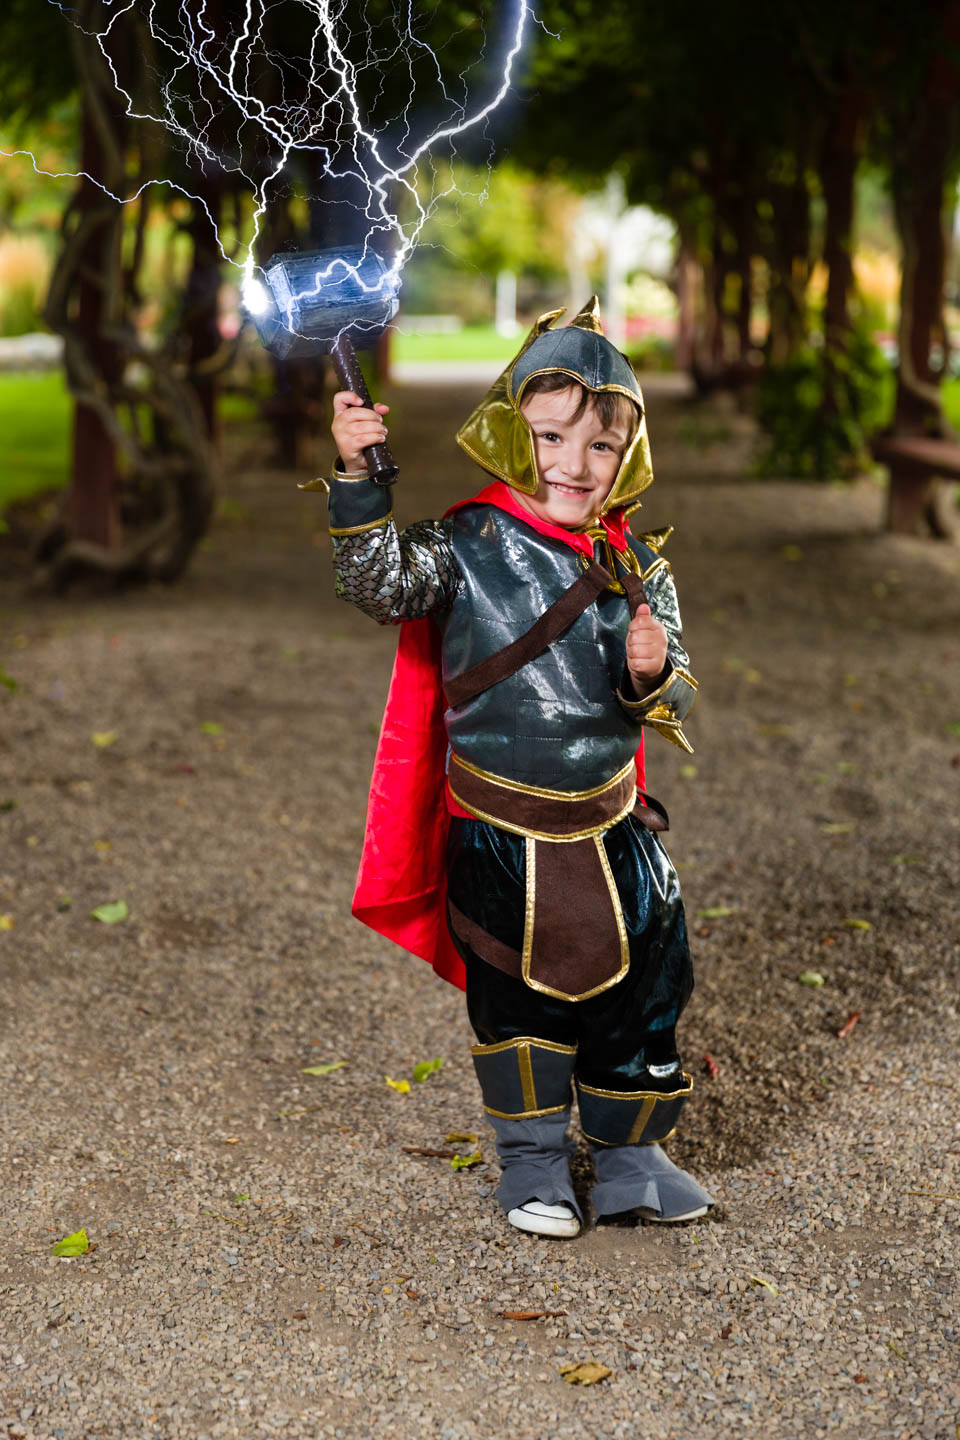 Alexander dressed as Thor and I added lightning with Photoshop